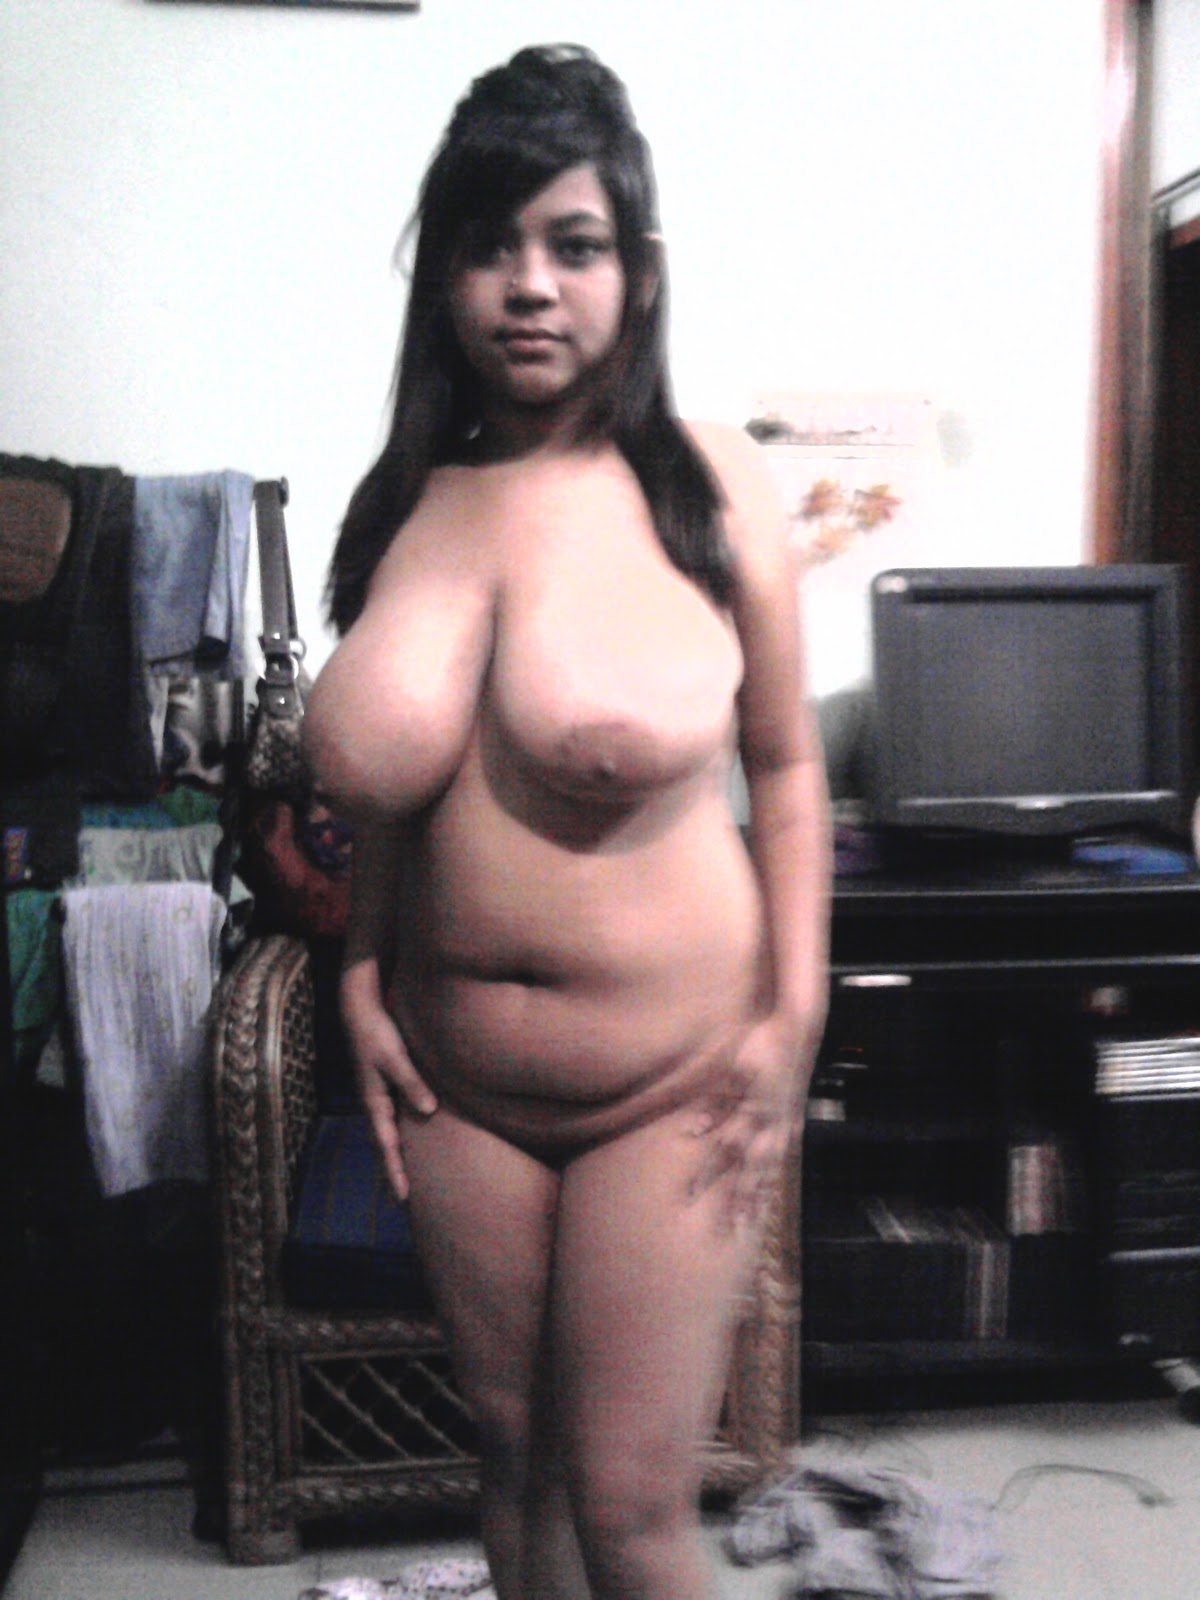 Opinion hot bangladeshi girl nude thank for